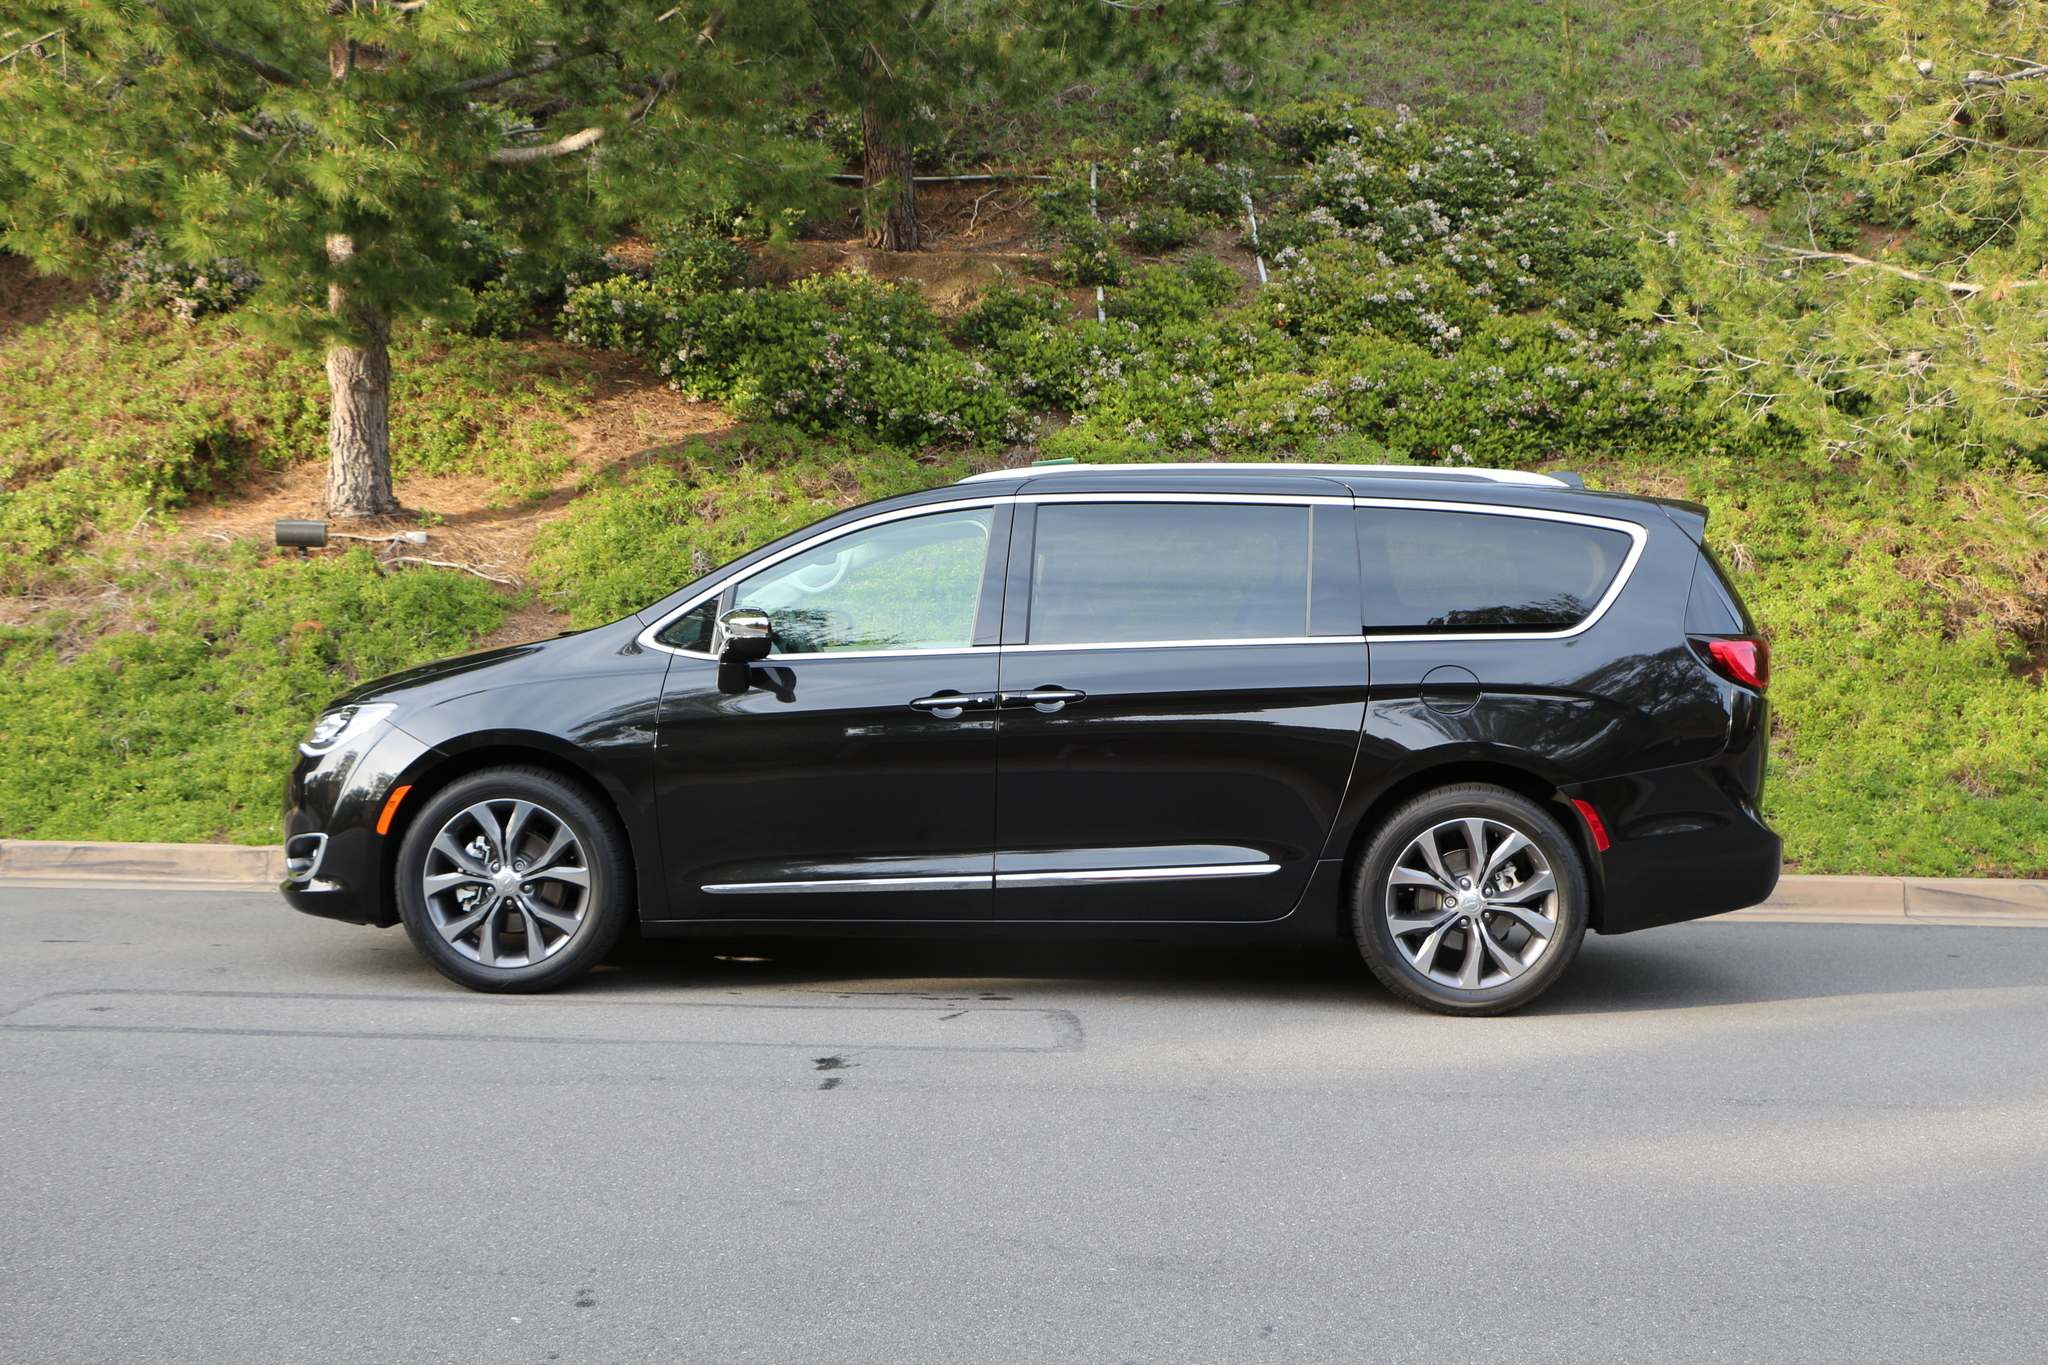 HARRY PEGG / WINNIPEG FREE PRESSThe 2017 Chrysler Pacifica replaces the automaker's Town & Country van.